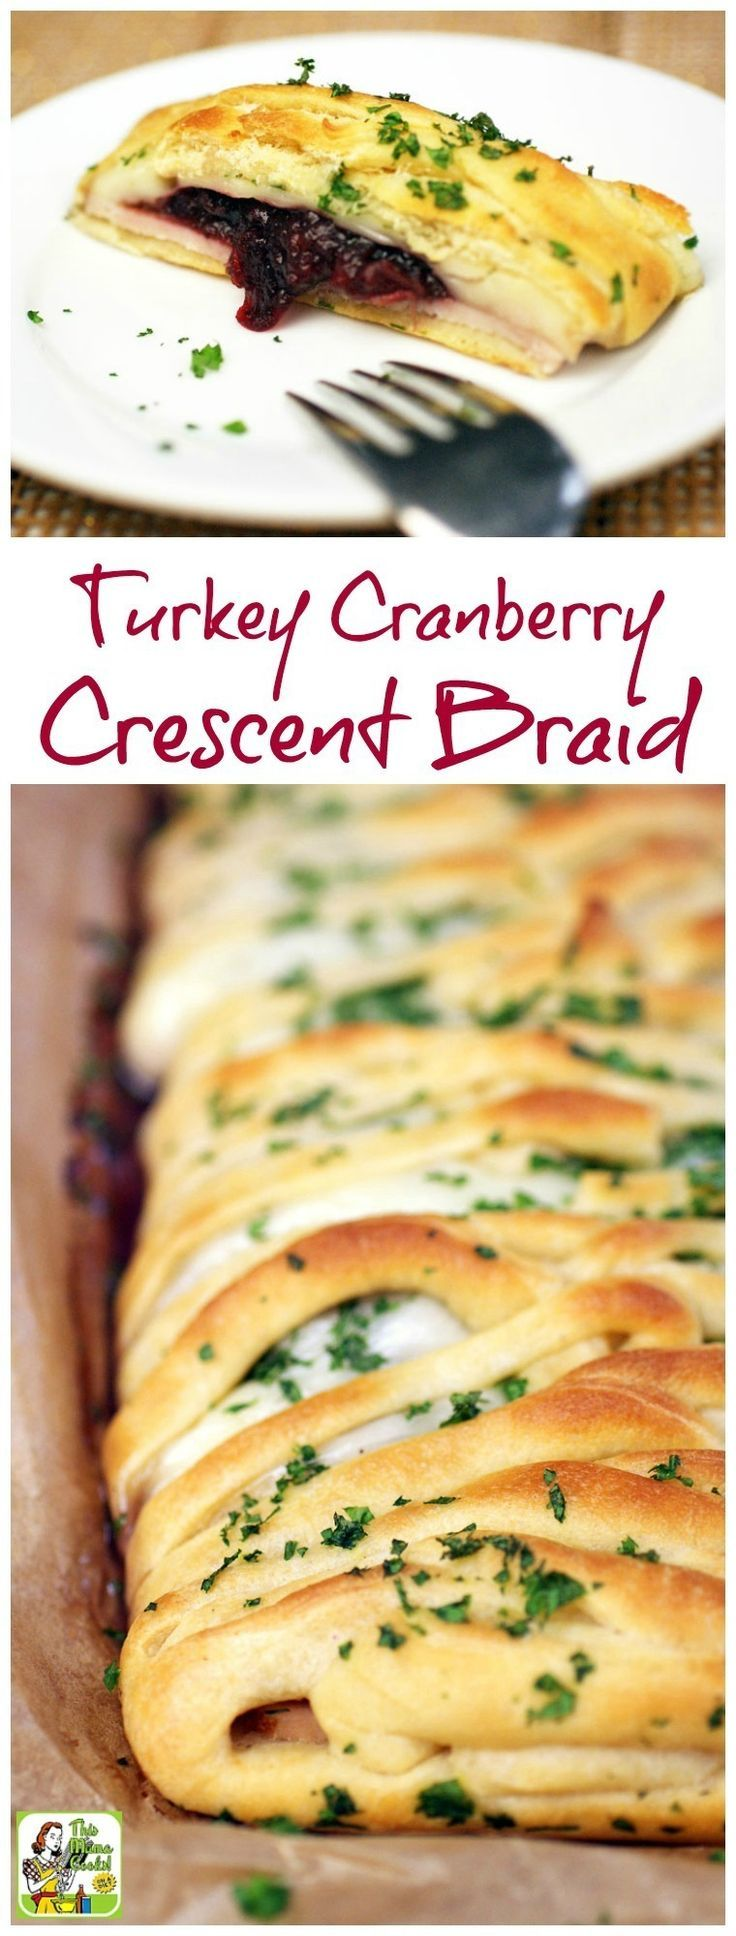 Not only is this Turkey Cranberry Crescent Braid recipe a terrific party appetizer, it's a thrifty way to use up holiday dinner leftovers. Click to learn how to make this crescent dough recipe.